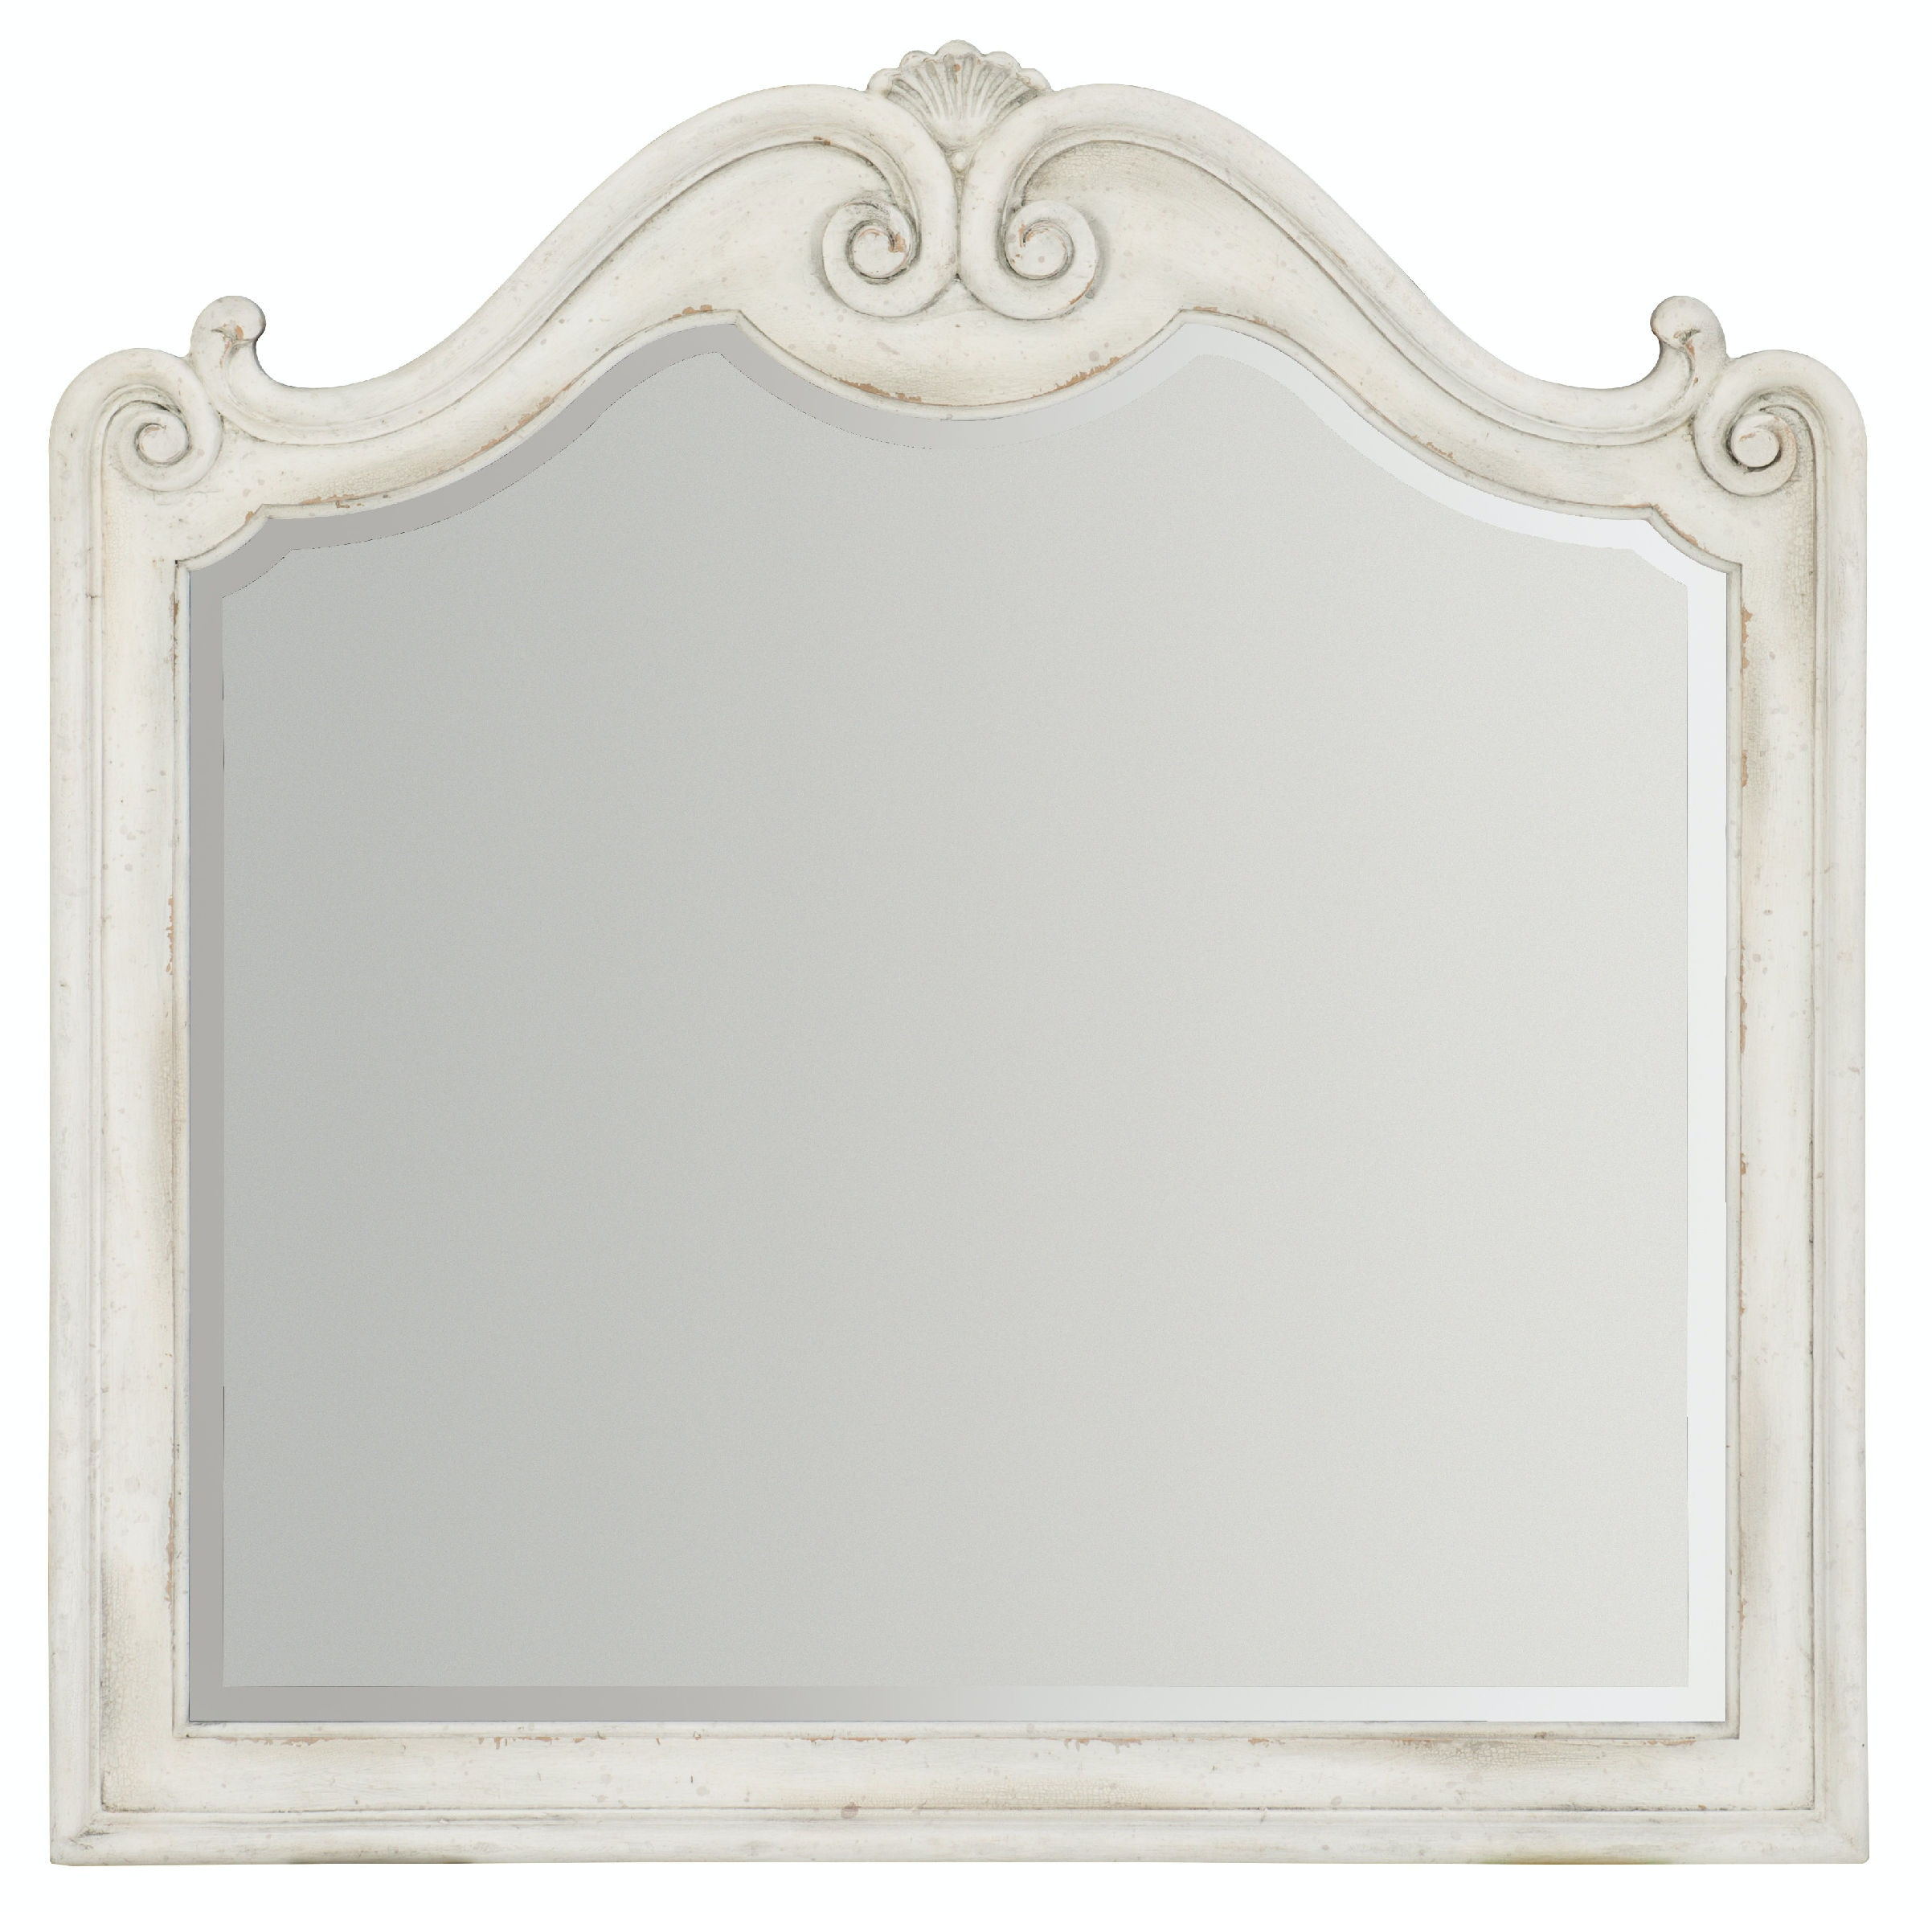 Hooker Furniture Arabella Mirror 1610 90004 WH